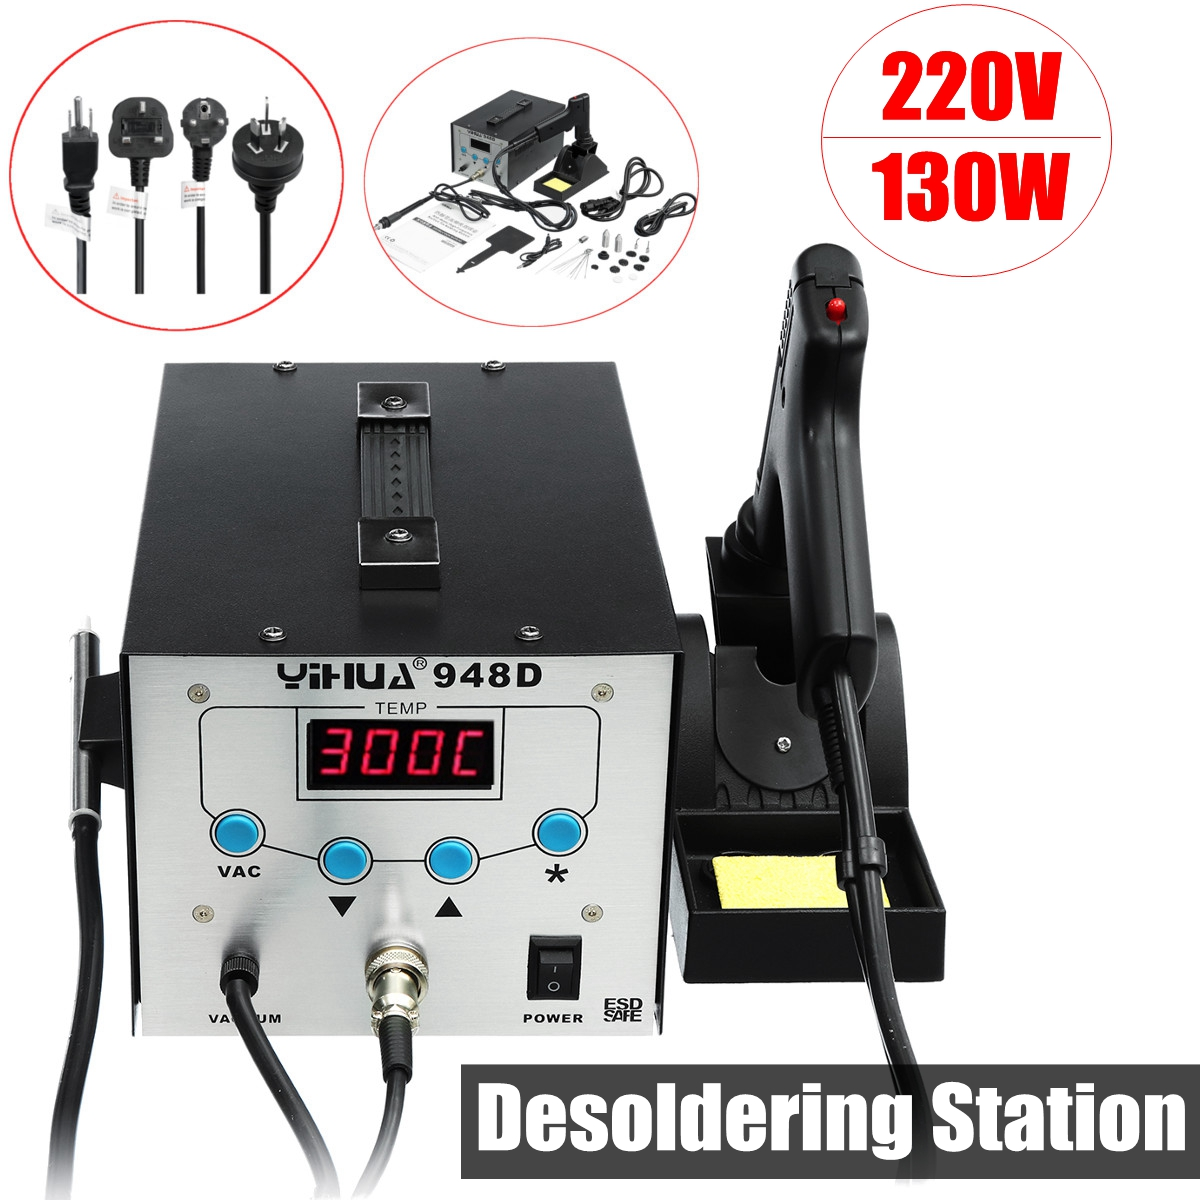 YIHUA 8586 2 in 1 220V 700W ESD Hot Air Rework station soldering station LED Digital Solder Iron BGA Rework Solder Station esd safe 75w soldering handpiece t245a solder iron handle for di3000 intelligent soldering station